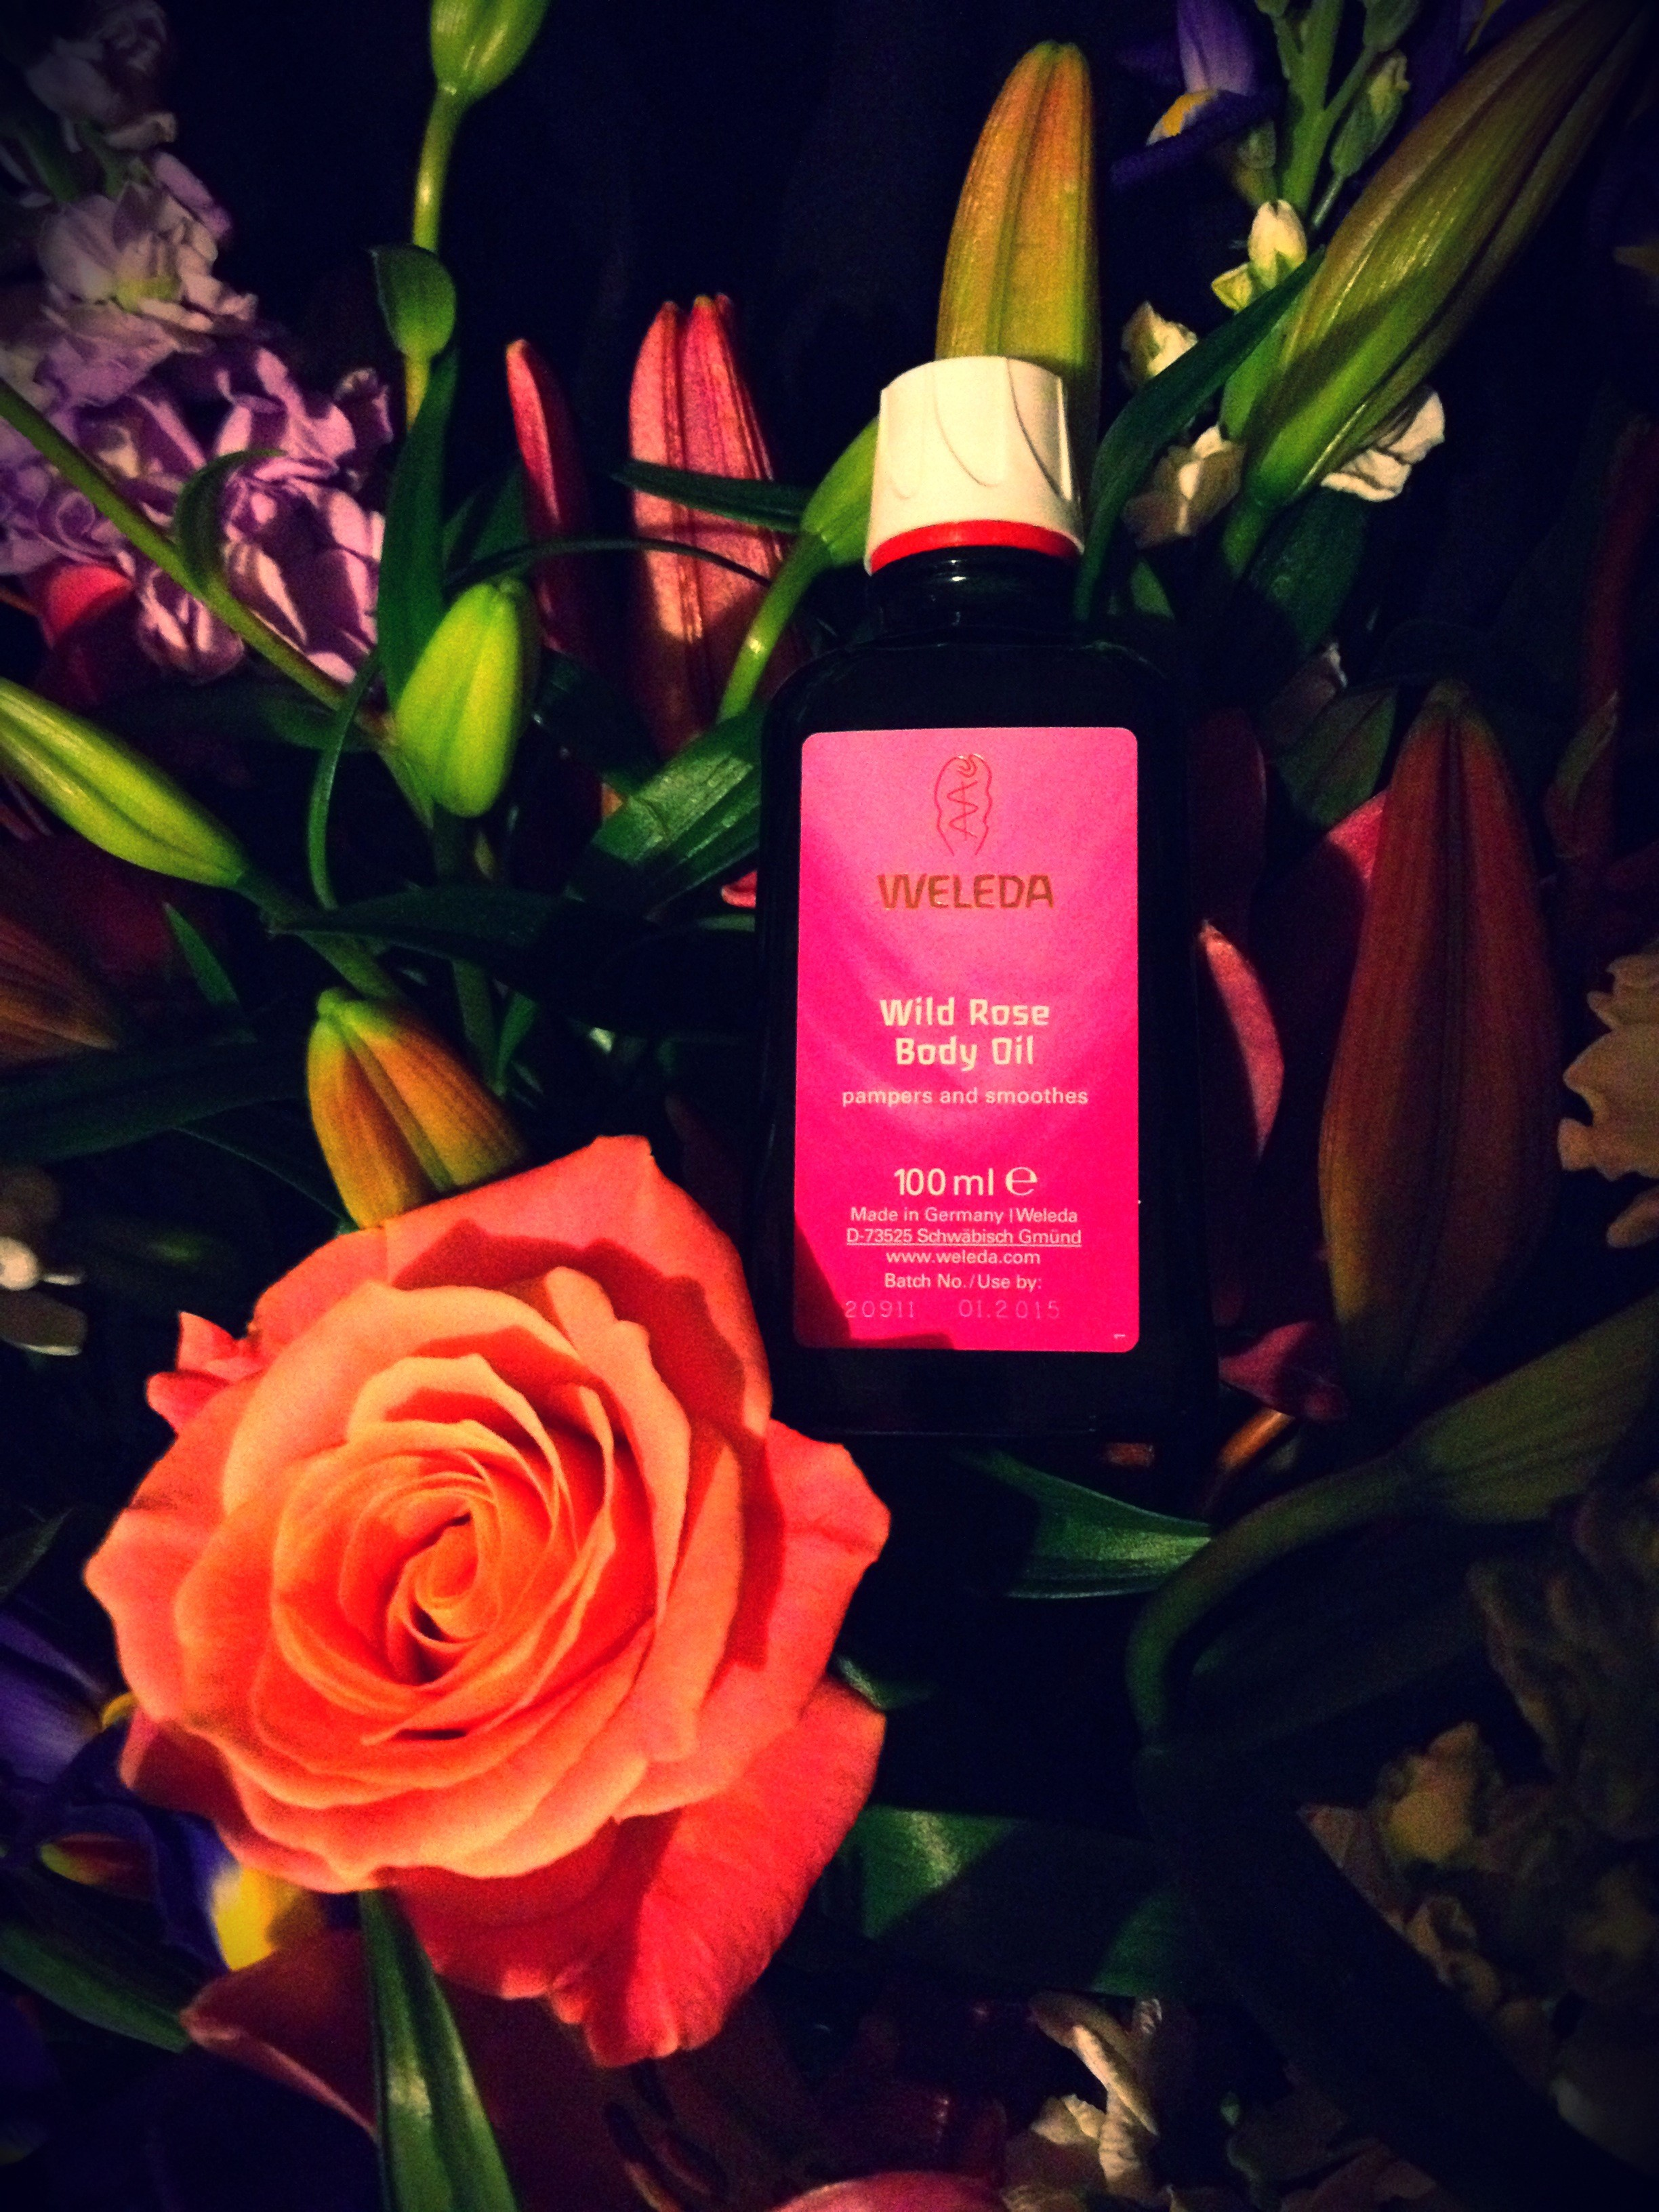 Weleda, weleda wild rose body oil, Body Oil, Rose oil, makeup, beauty, cosmetics, beauty blog nz, fashion blog nz, style blog nz, beauty media nz, fashion media nz, angie fredatovich, gurlinterrupted